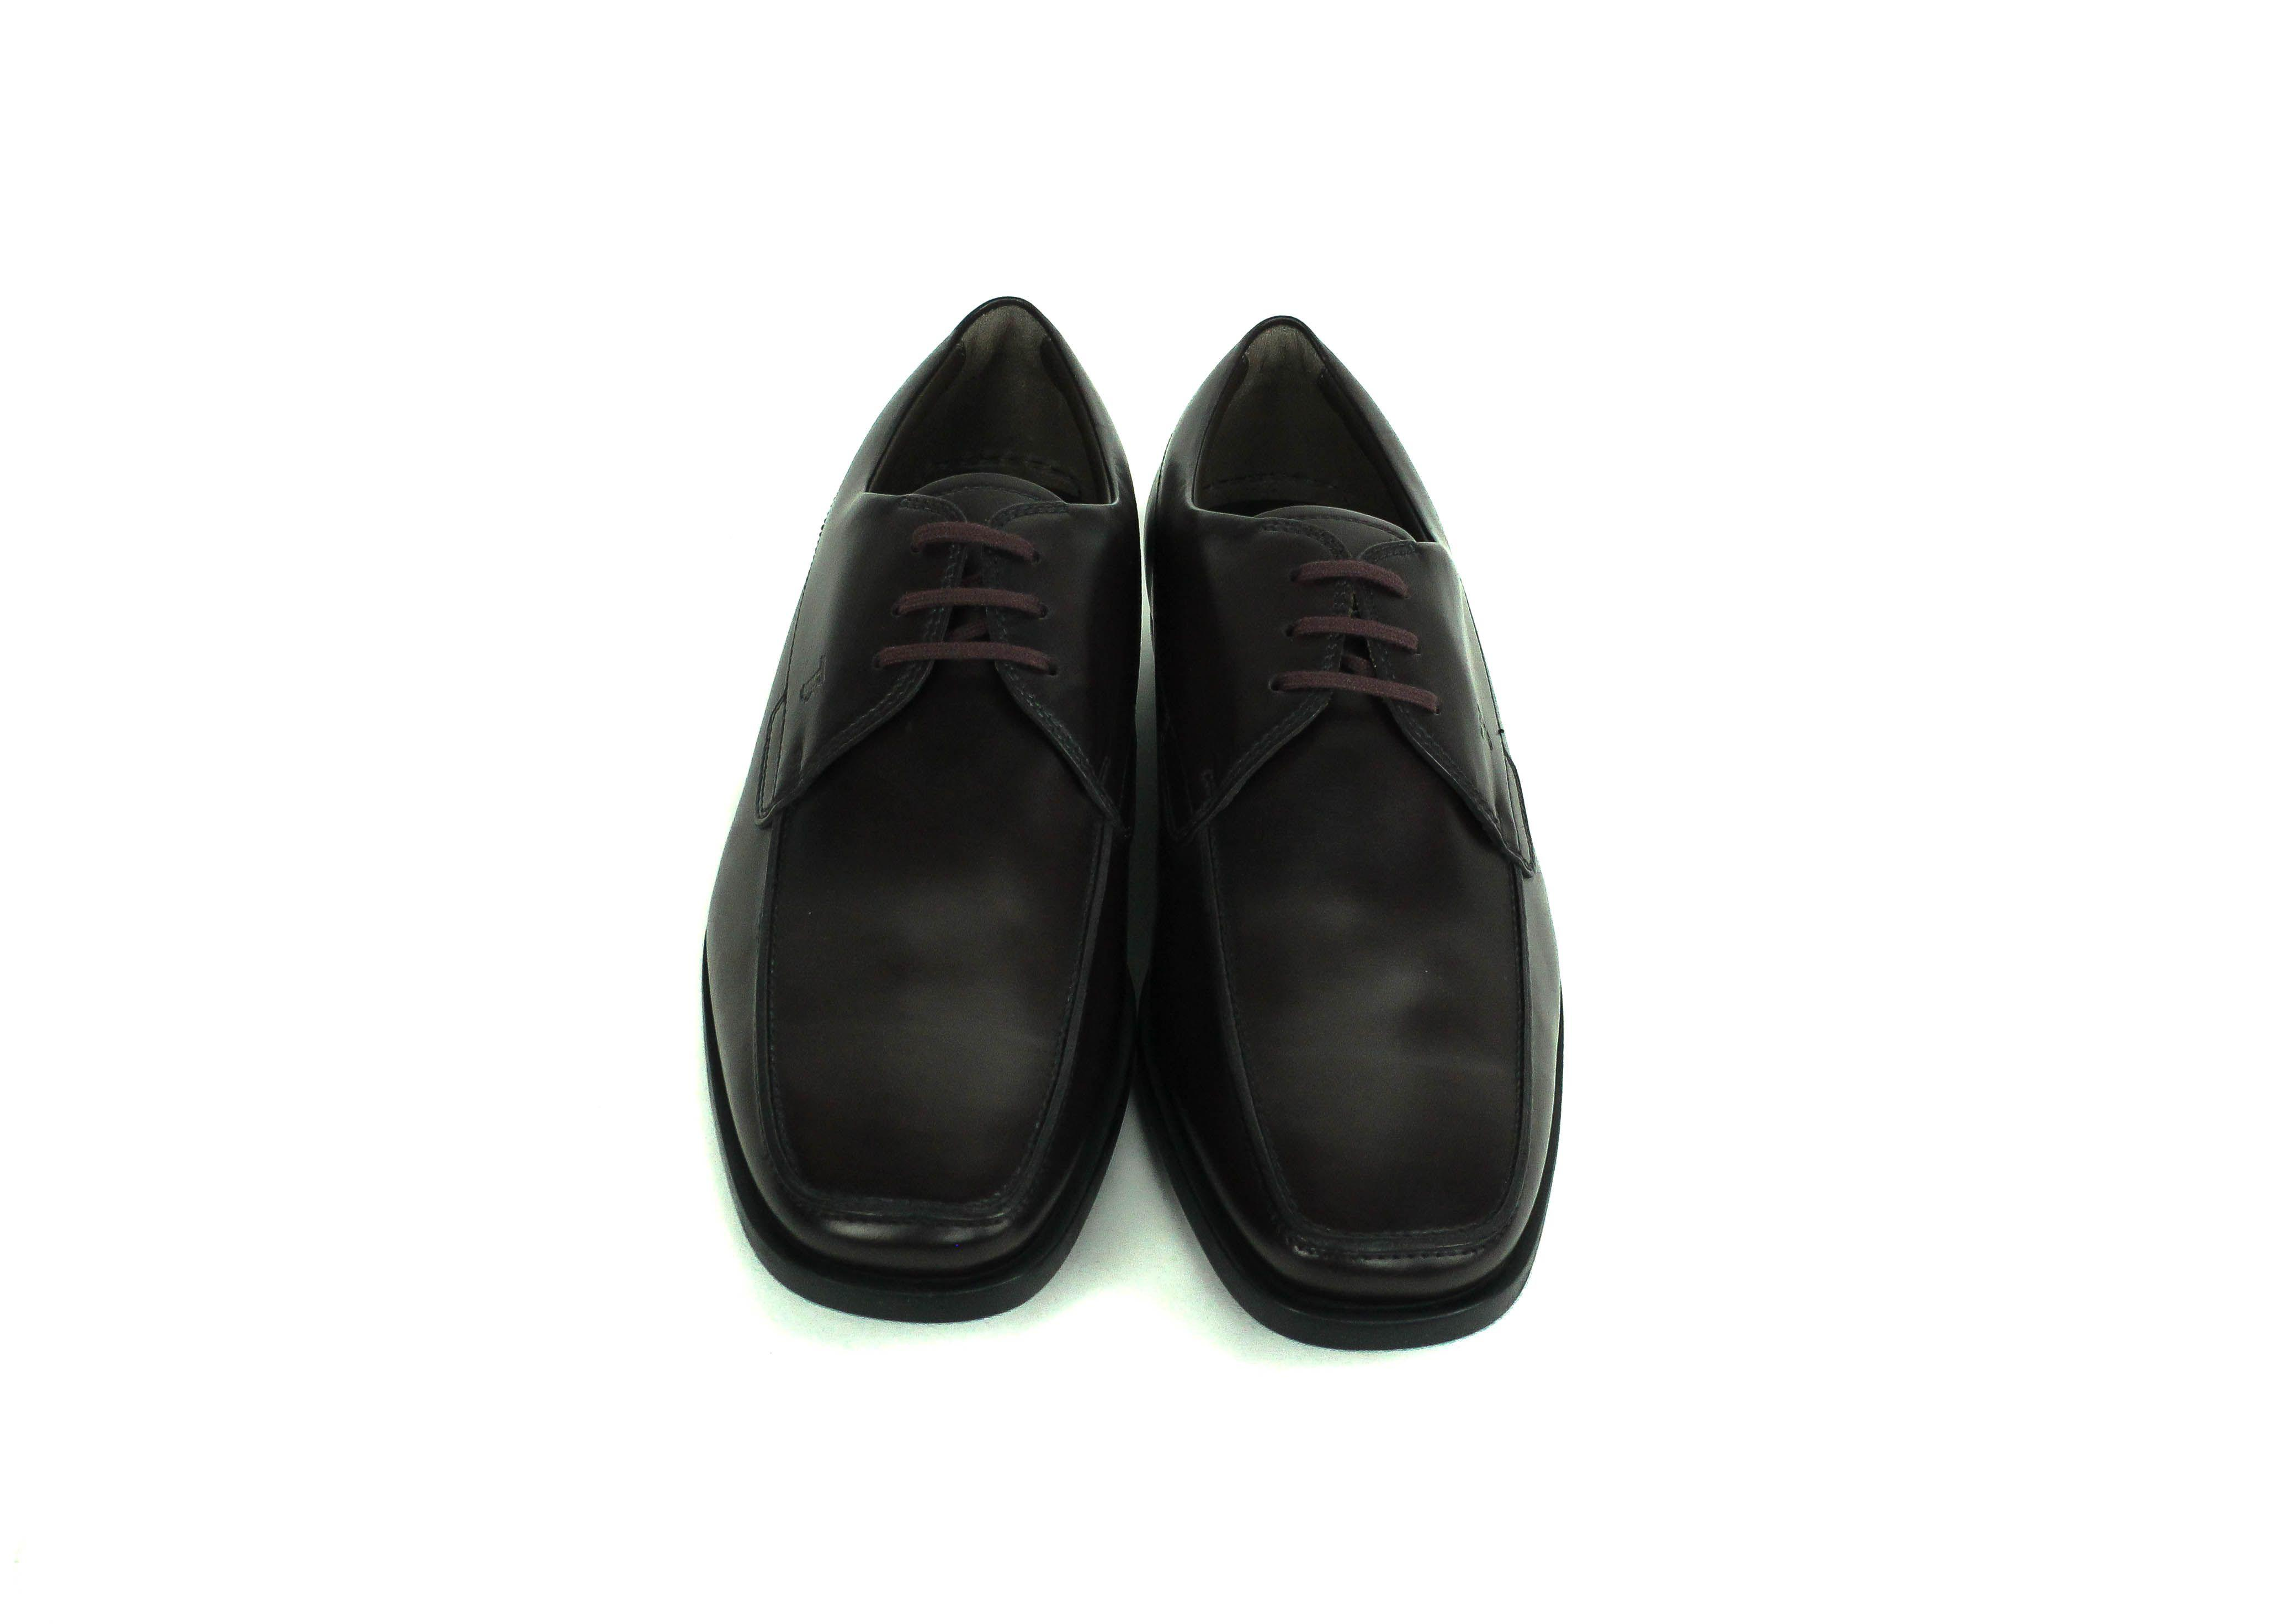 31d1d08b341 Tod's - Black Mens Burgundy Brown Leather Oxford Shoes for Men - Lyst. View  fullscreen